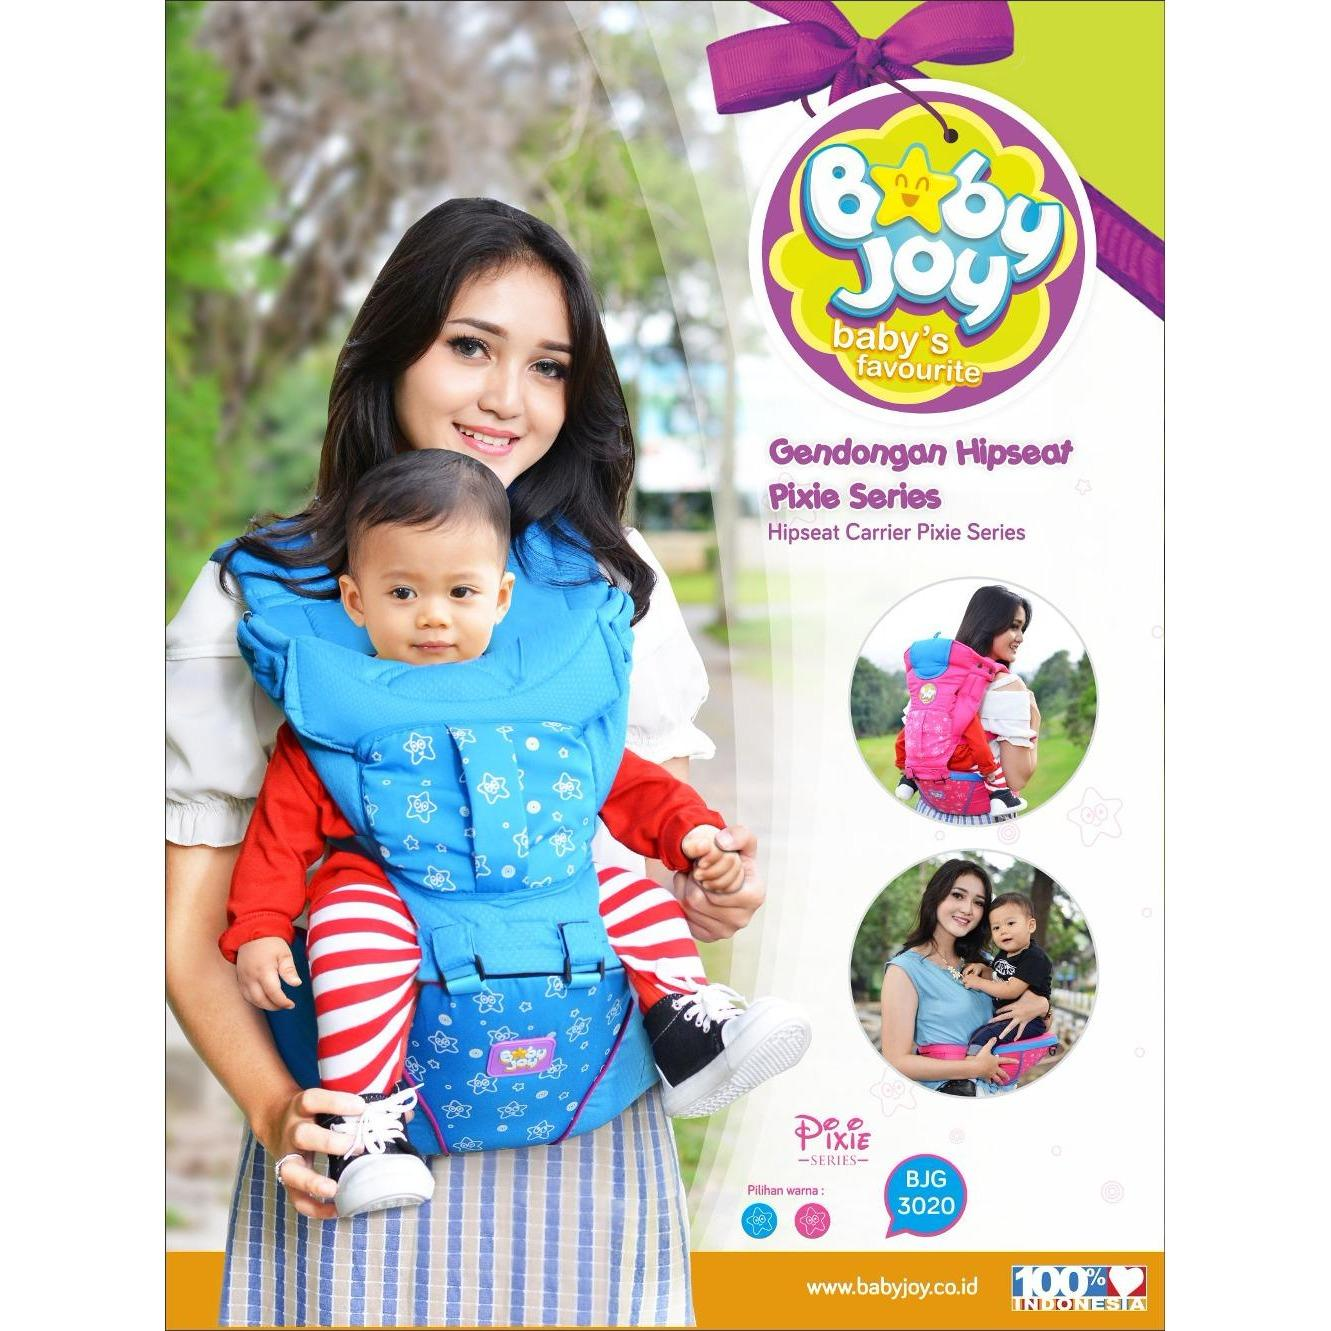 Jelova Angela Gendongan Hipseat Special Lullaby Series Quality Moms Baby Mbg2011 Kiddyidr230000 Rp 235000